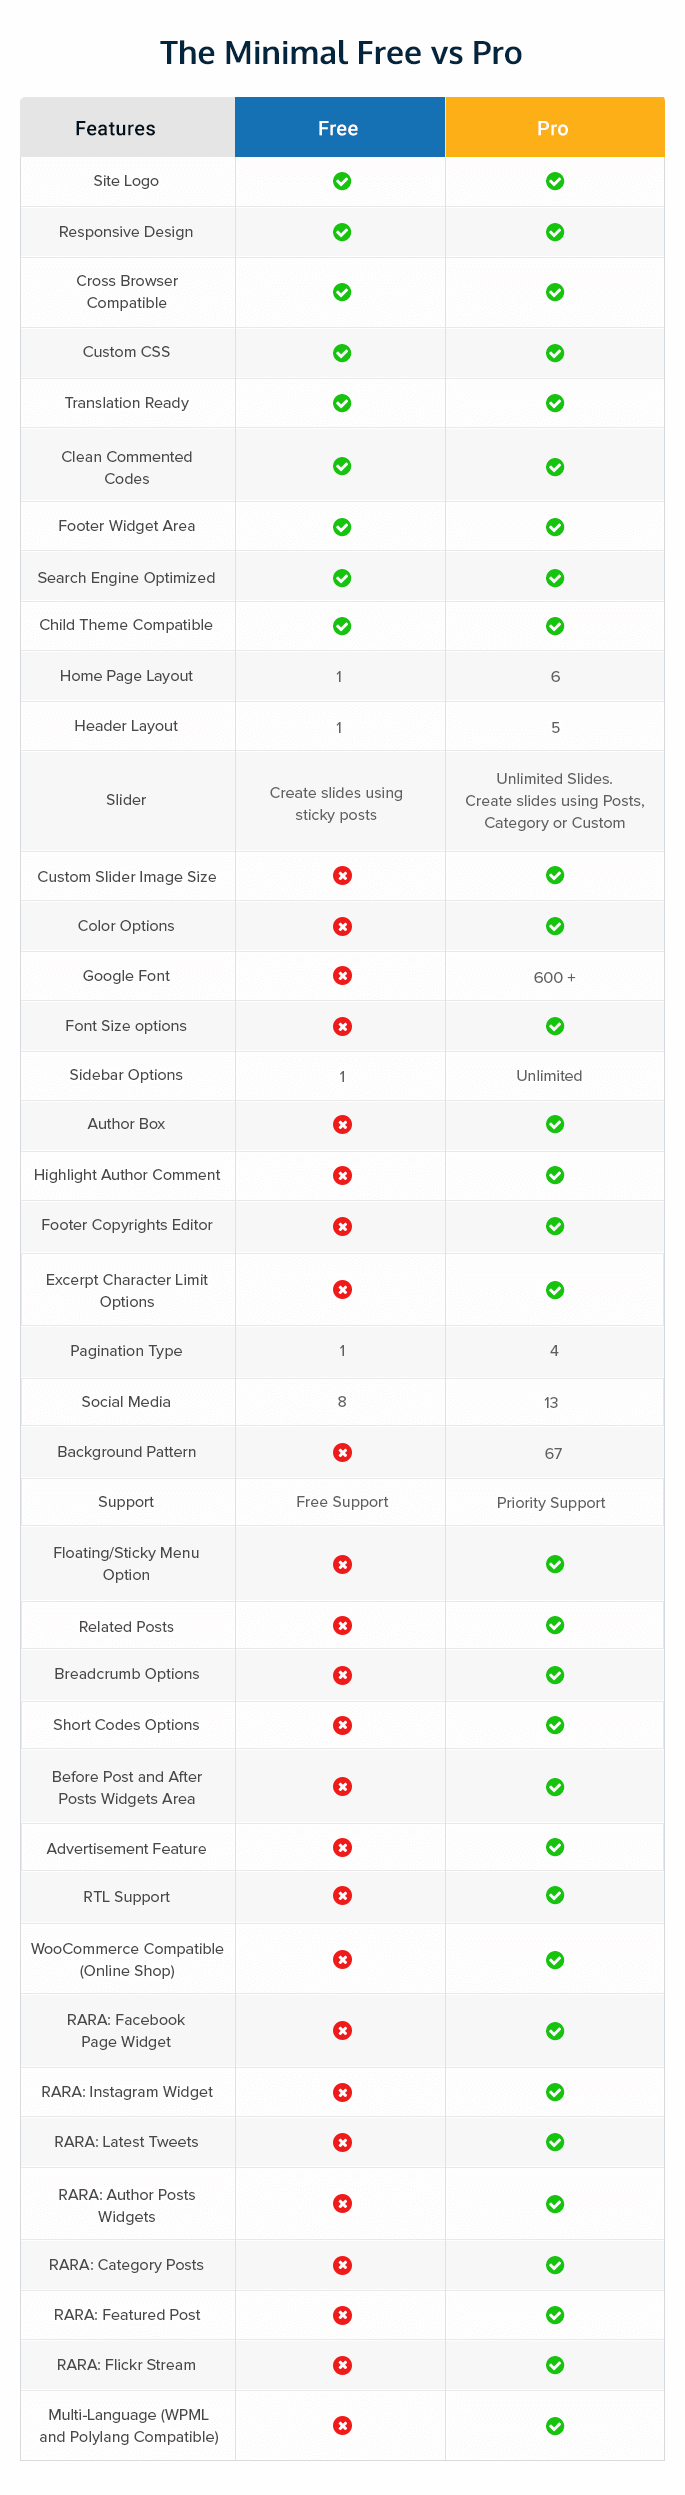 The minimal Free Vs Pro Theme Comparison Chart